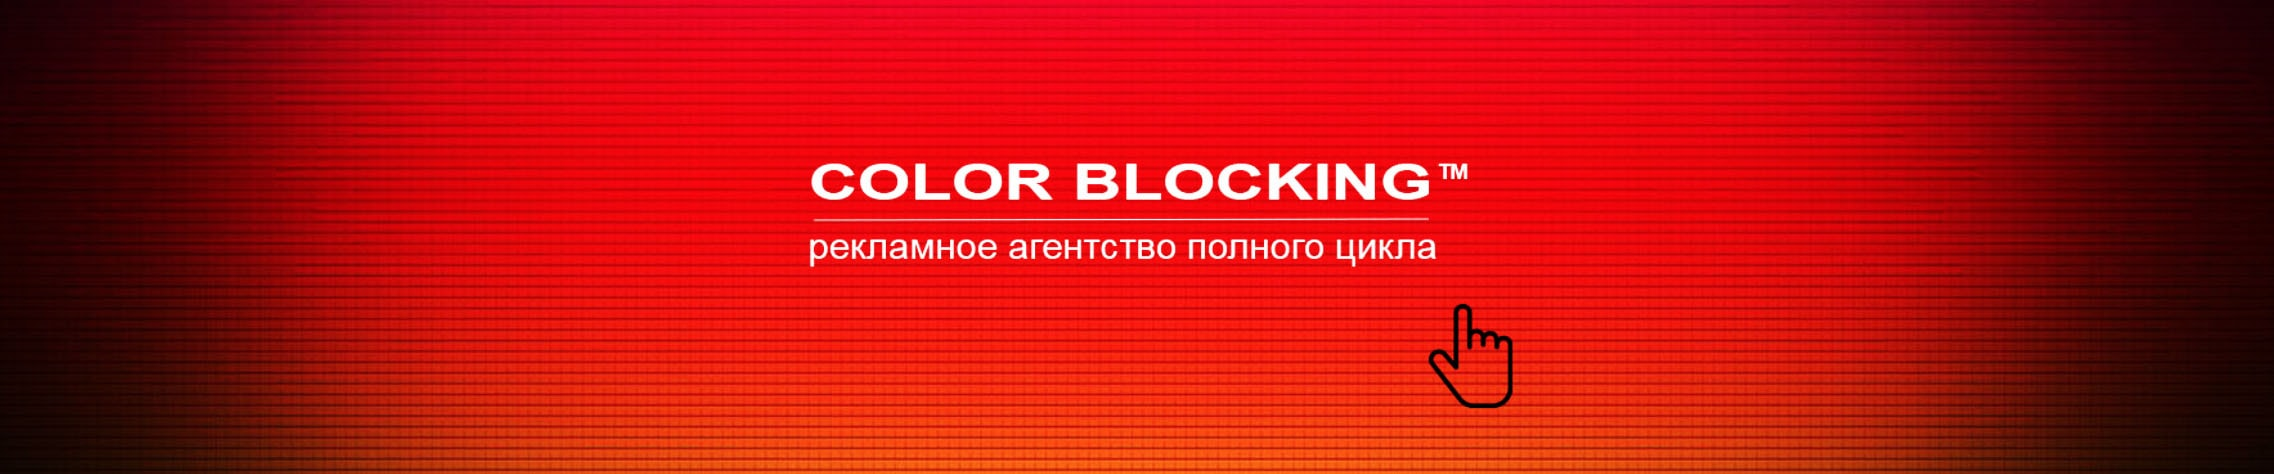 Реклама в журнале COLOR BLOCKING размещение